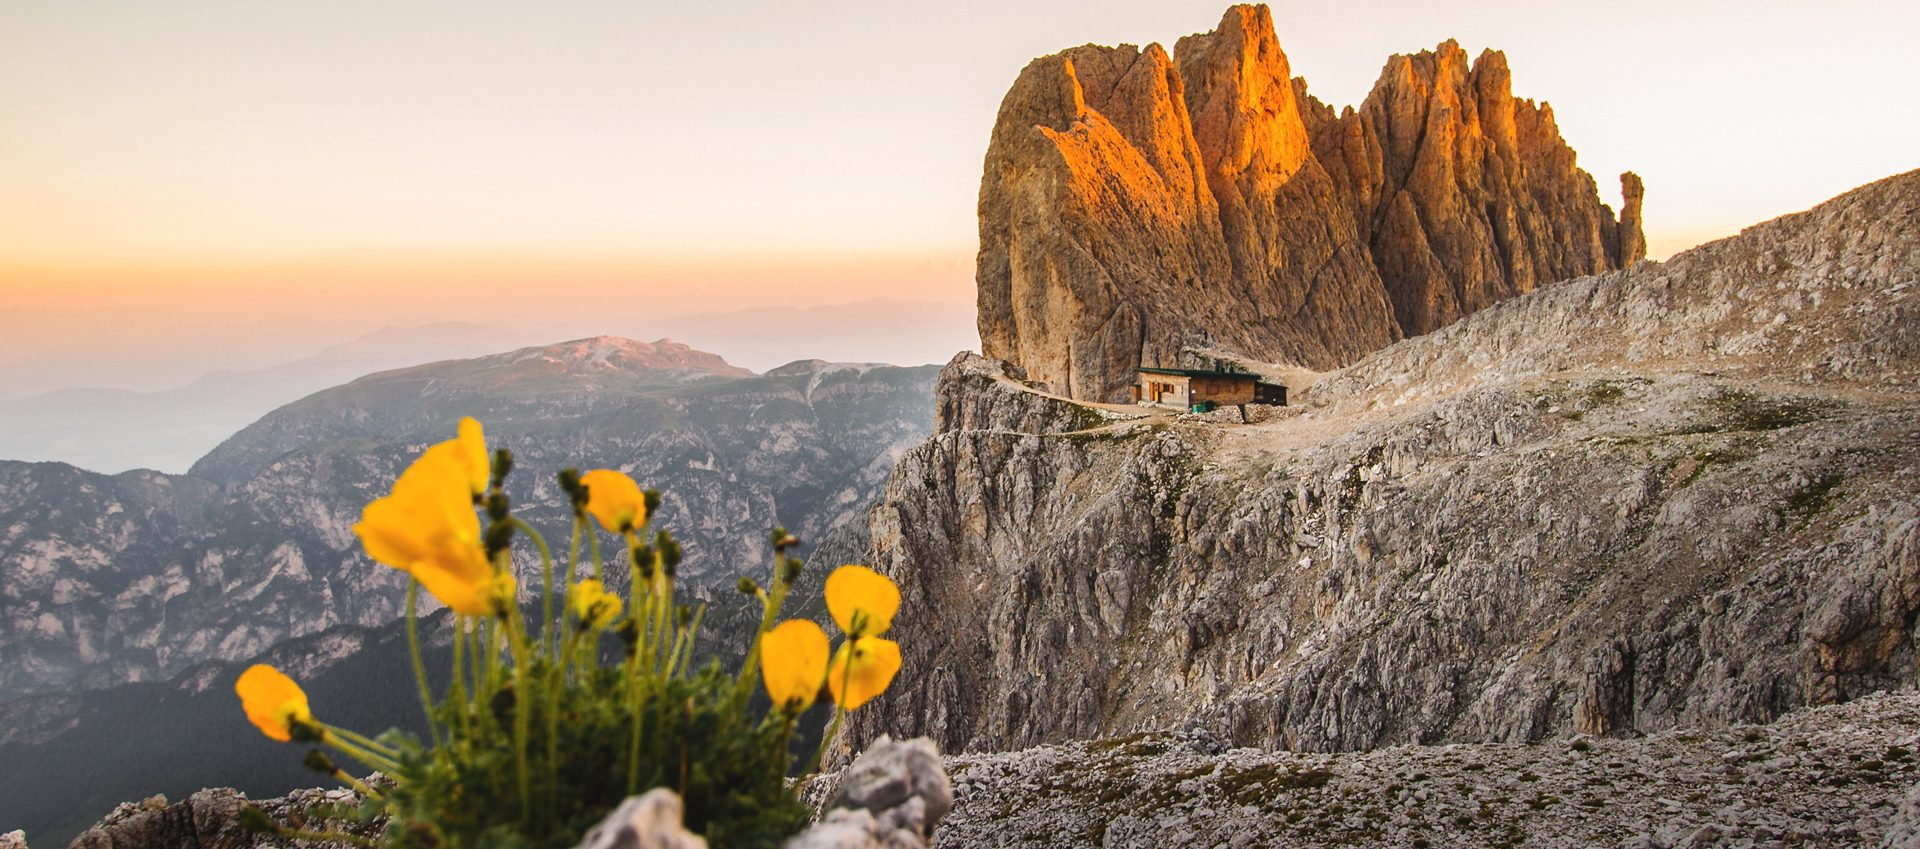 Santerpass hut in the Dolomites